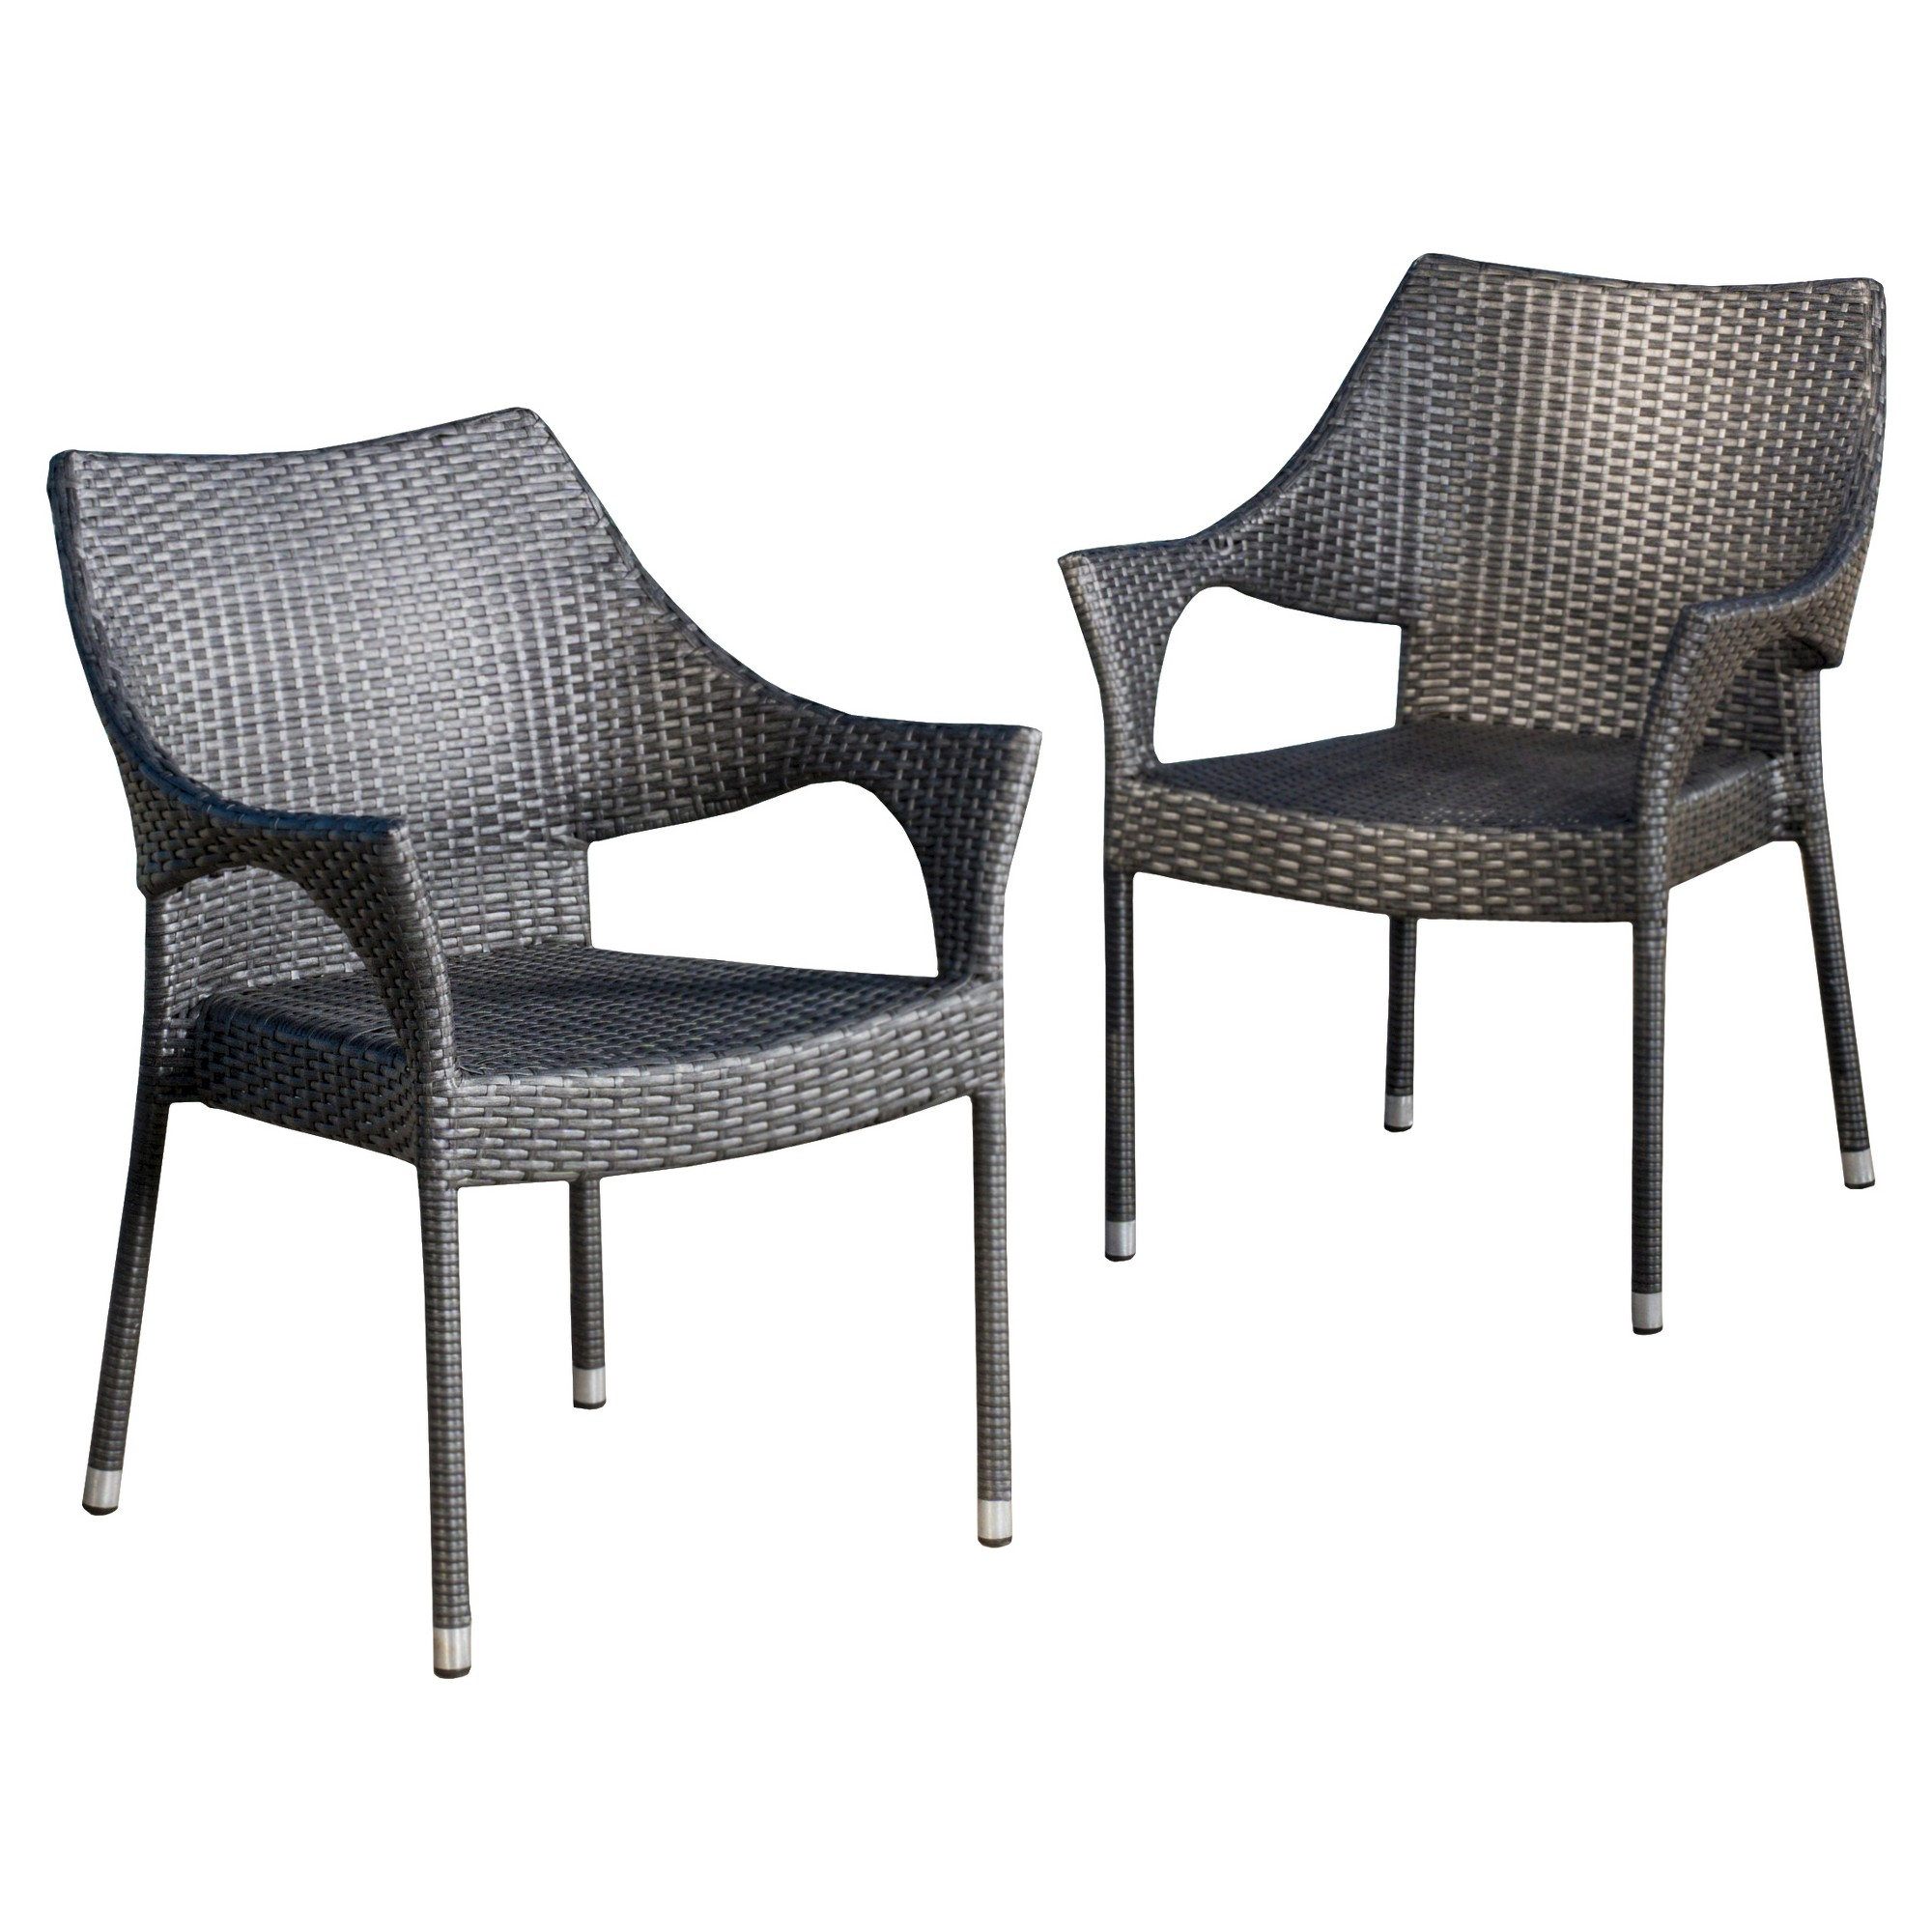 wicker patio chair set of 2 orthopedic desk cliff chairs gray christopher knight home